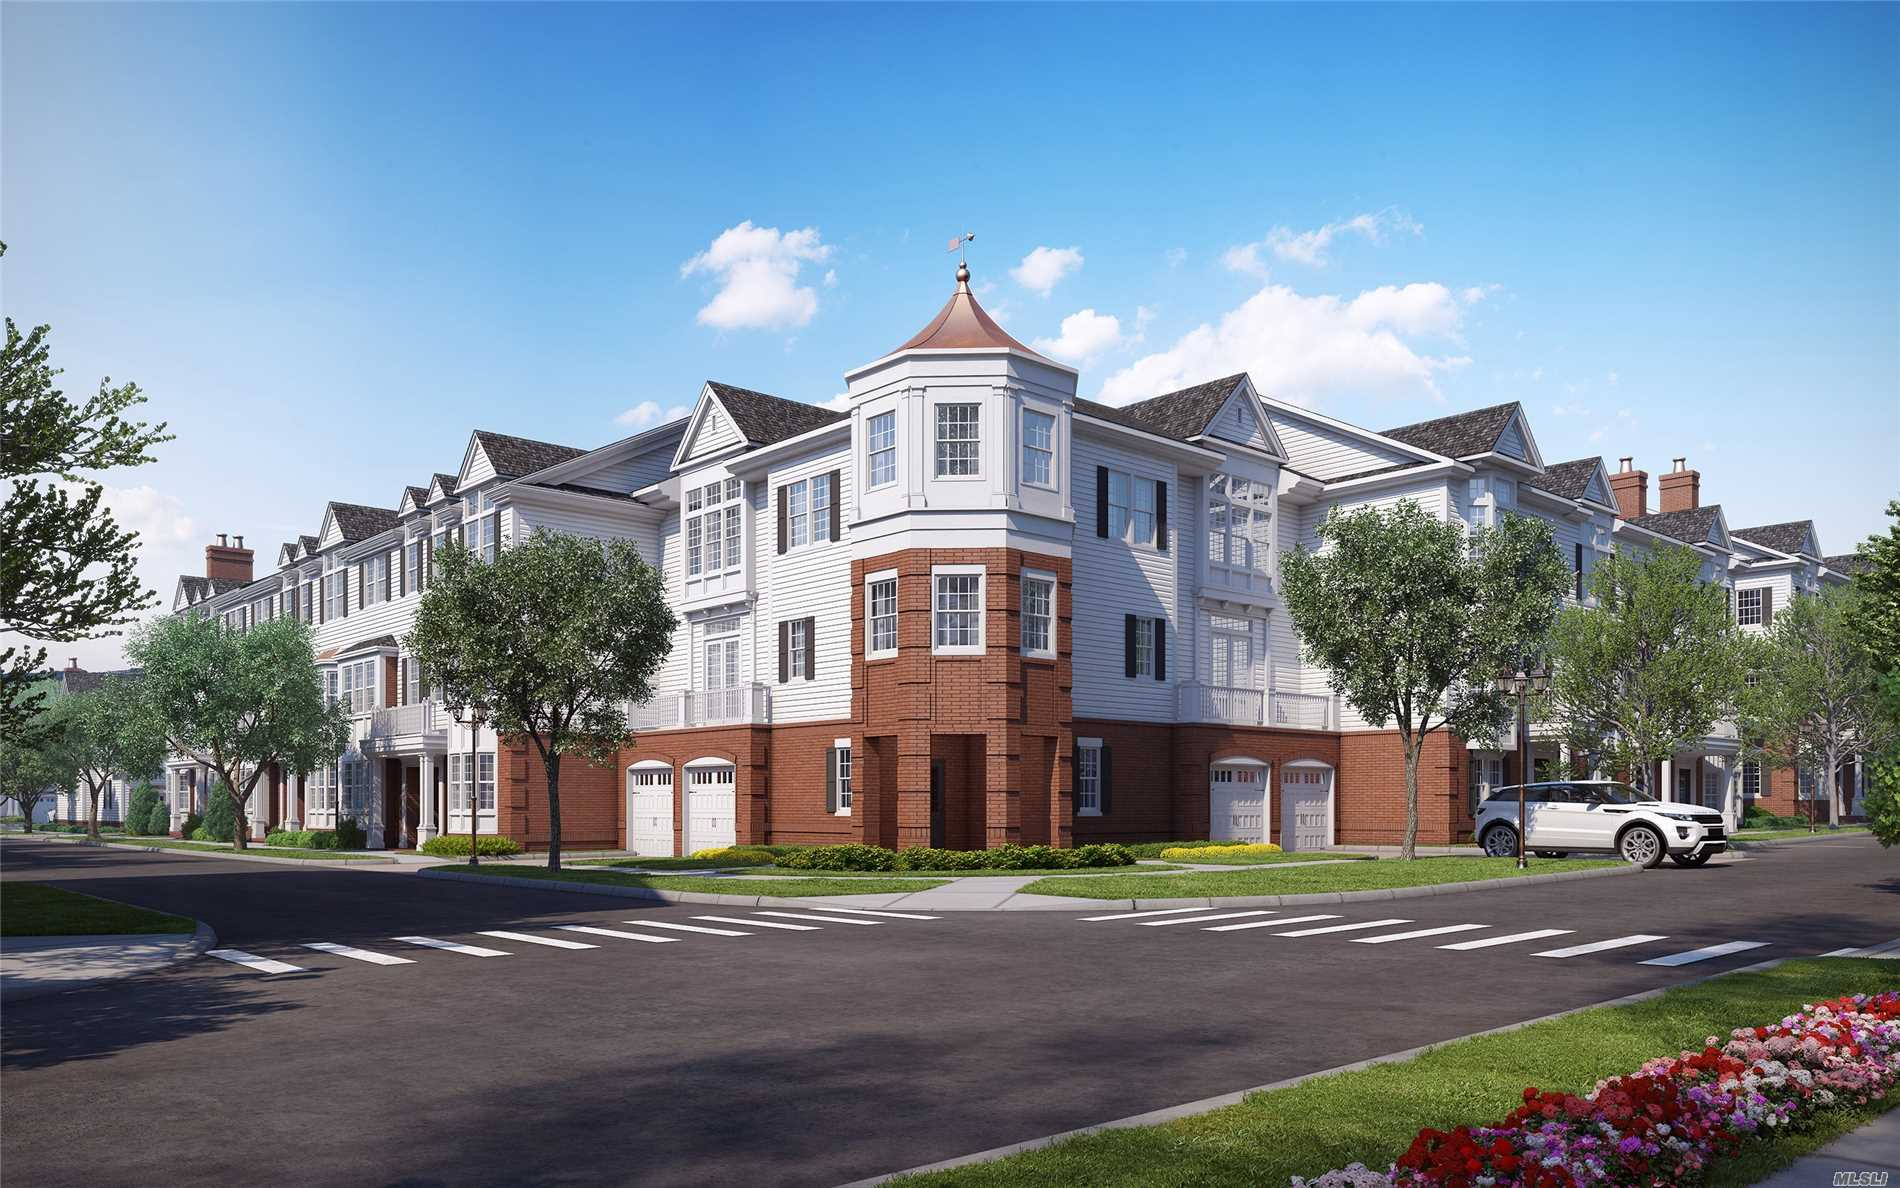 Roslyn. Roslyn Landing Is Limited Collection Of Townhouse Condos Located In The Heart Of Historic Roslyn. This 3 Bedroom, 2.5 Bathroom Townhouse Features A Modern Open Living Area With Access To A Private Balcony, A Spacious Master Suite And Abundant Walk-In Closets. A Truly Unique Opportunity For Luxurious And Maintenance Free Living On Long Island's Gold Coast.